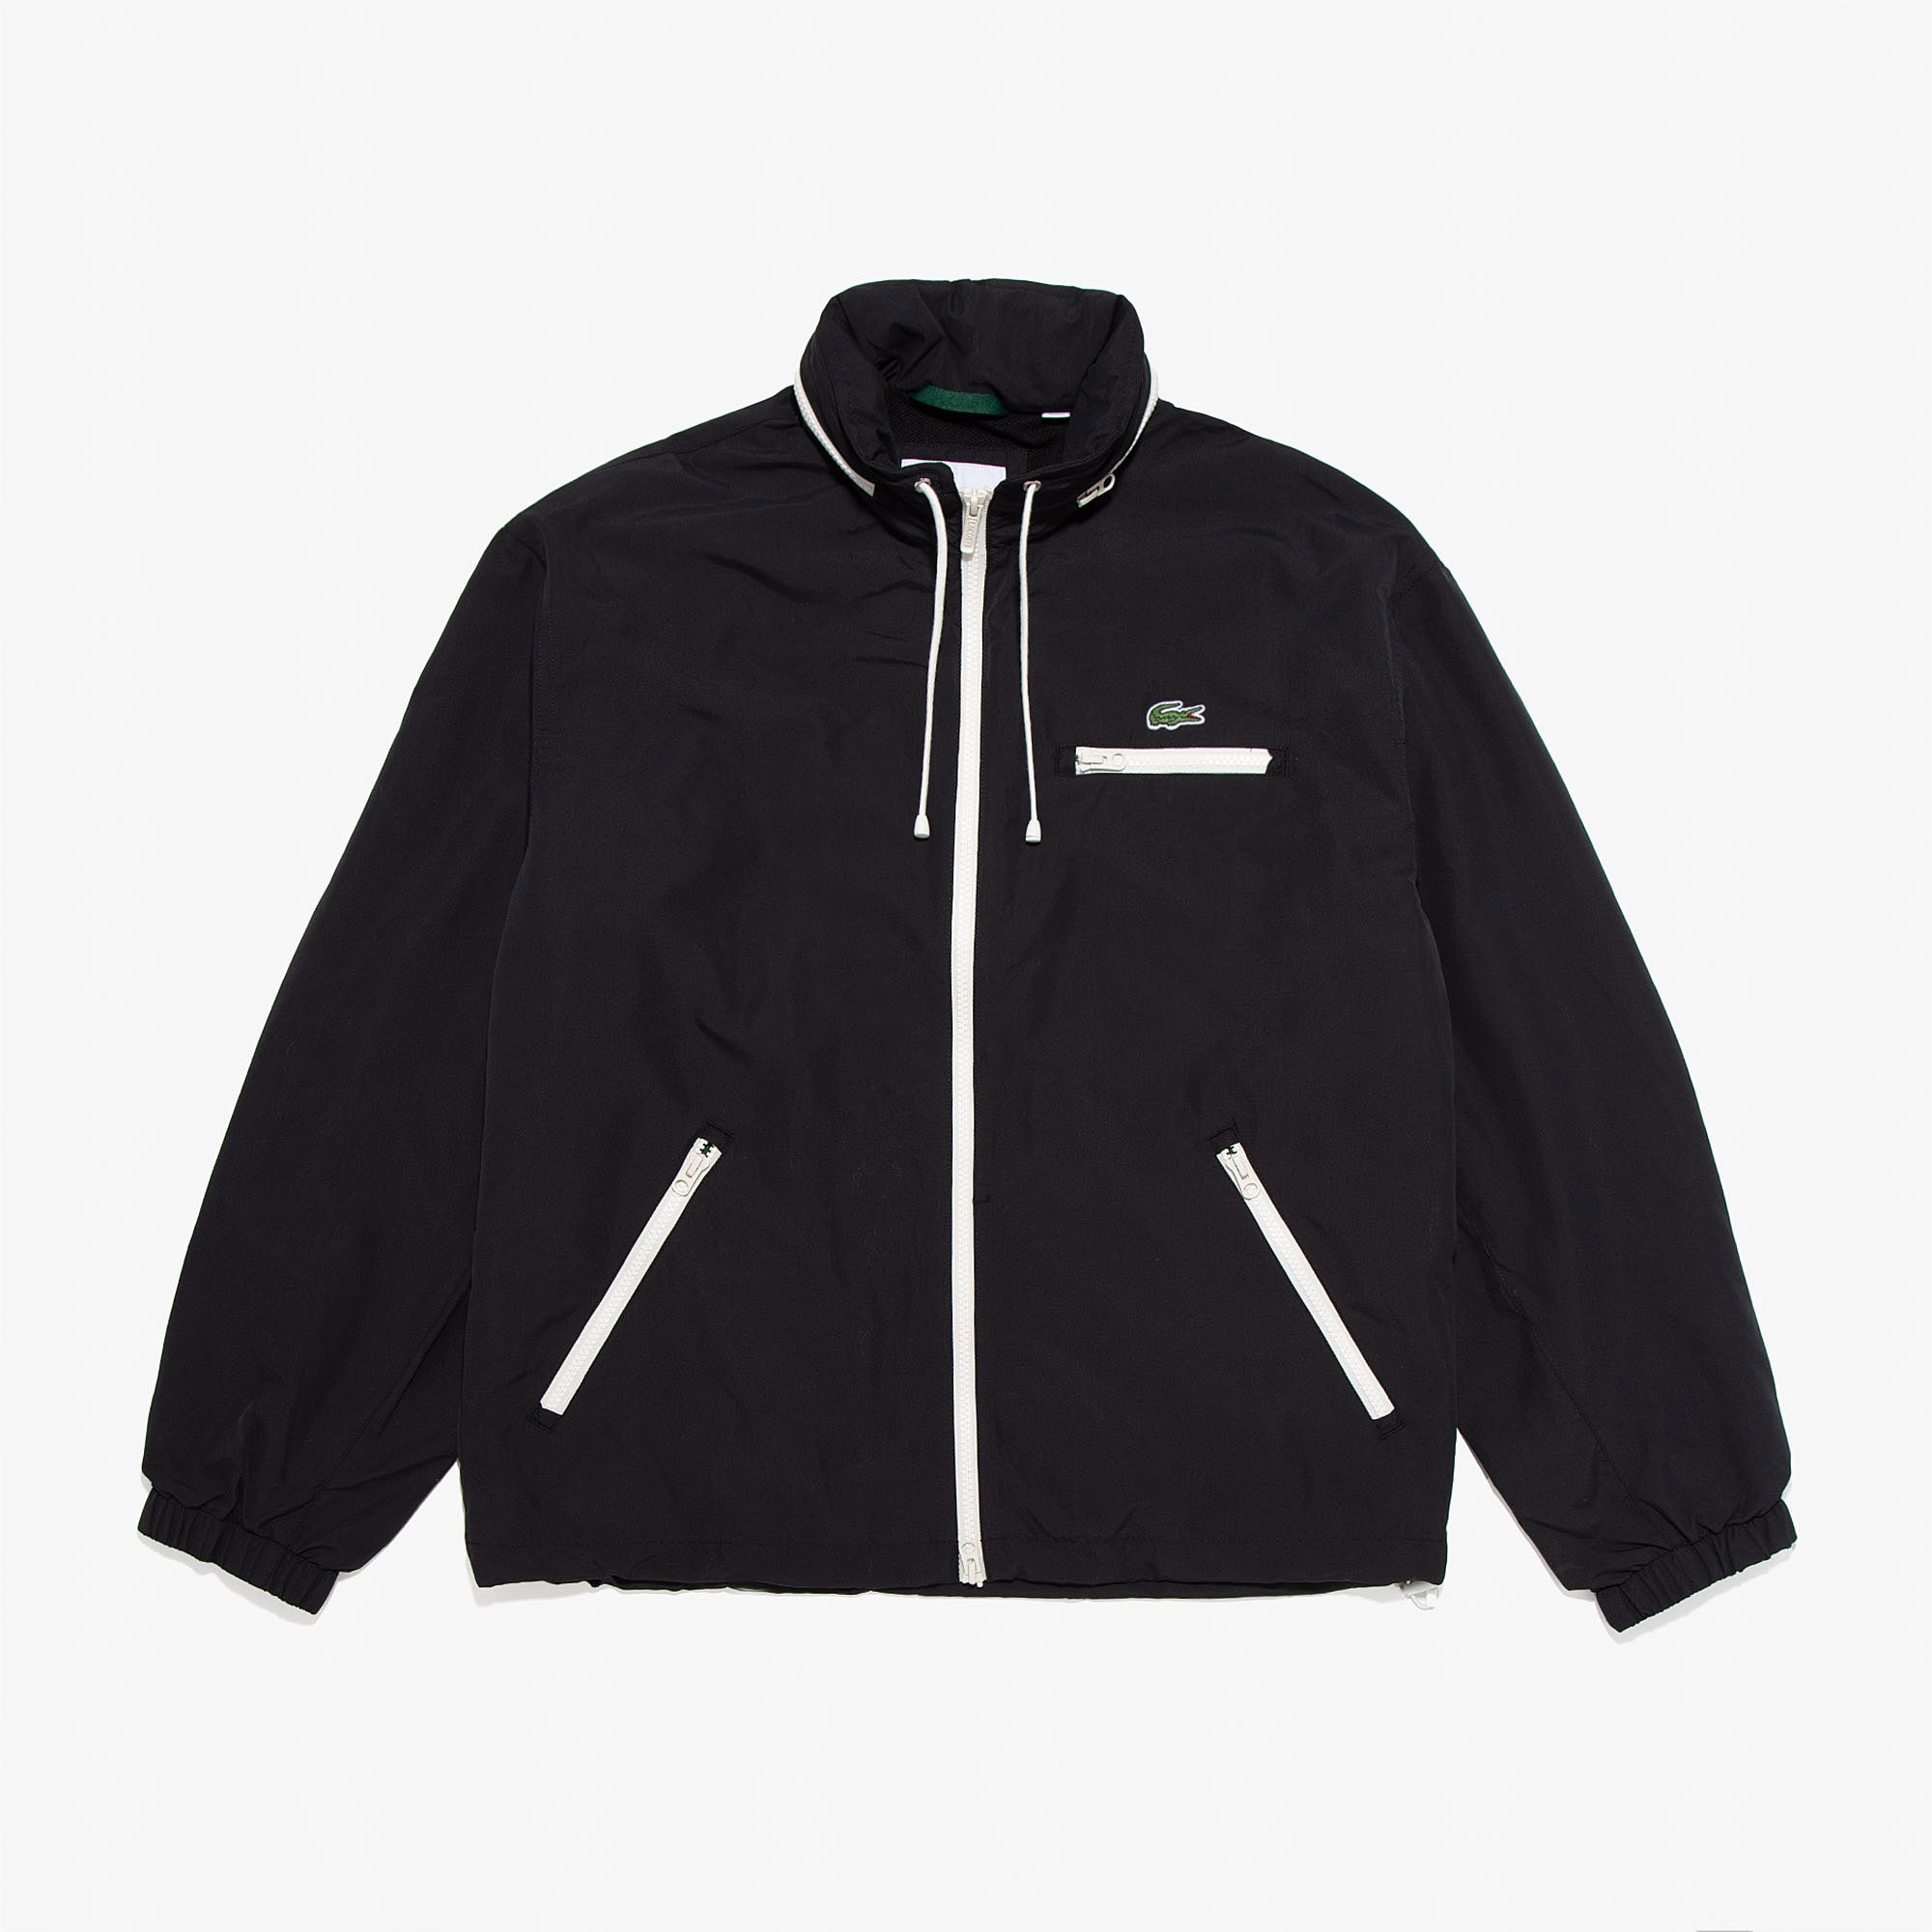 라코스테 Lacoste Mens Lightweight Water-Resistant Hooded Windbreaker